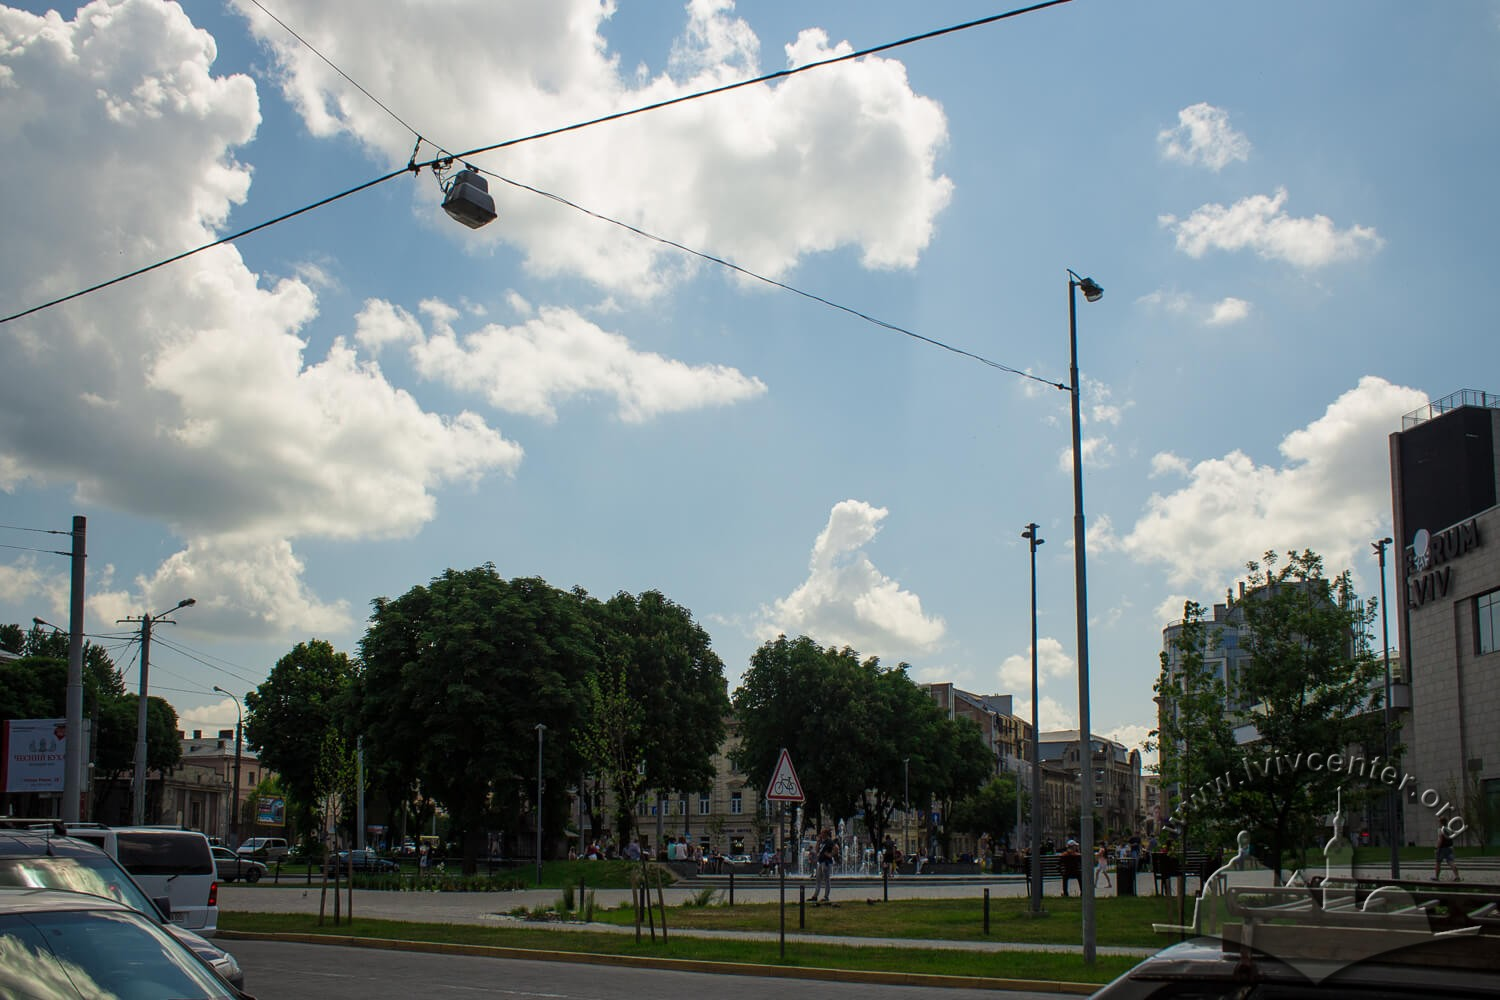 Vul. Pid Dubom. On the right, the Forum trade center (constructed in 2015). In 19th century, Misionerska square was located here, and the city mead distillery was in the vicinity/Photo courtesy of Olha Zarechnyuk, 2016